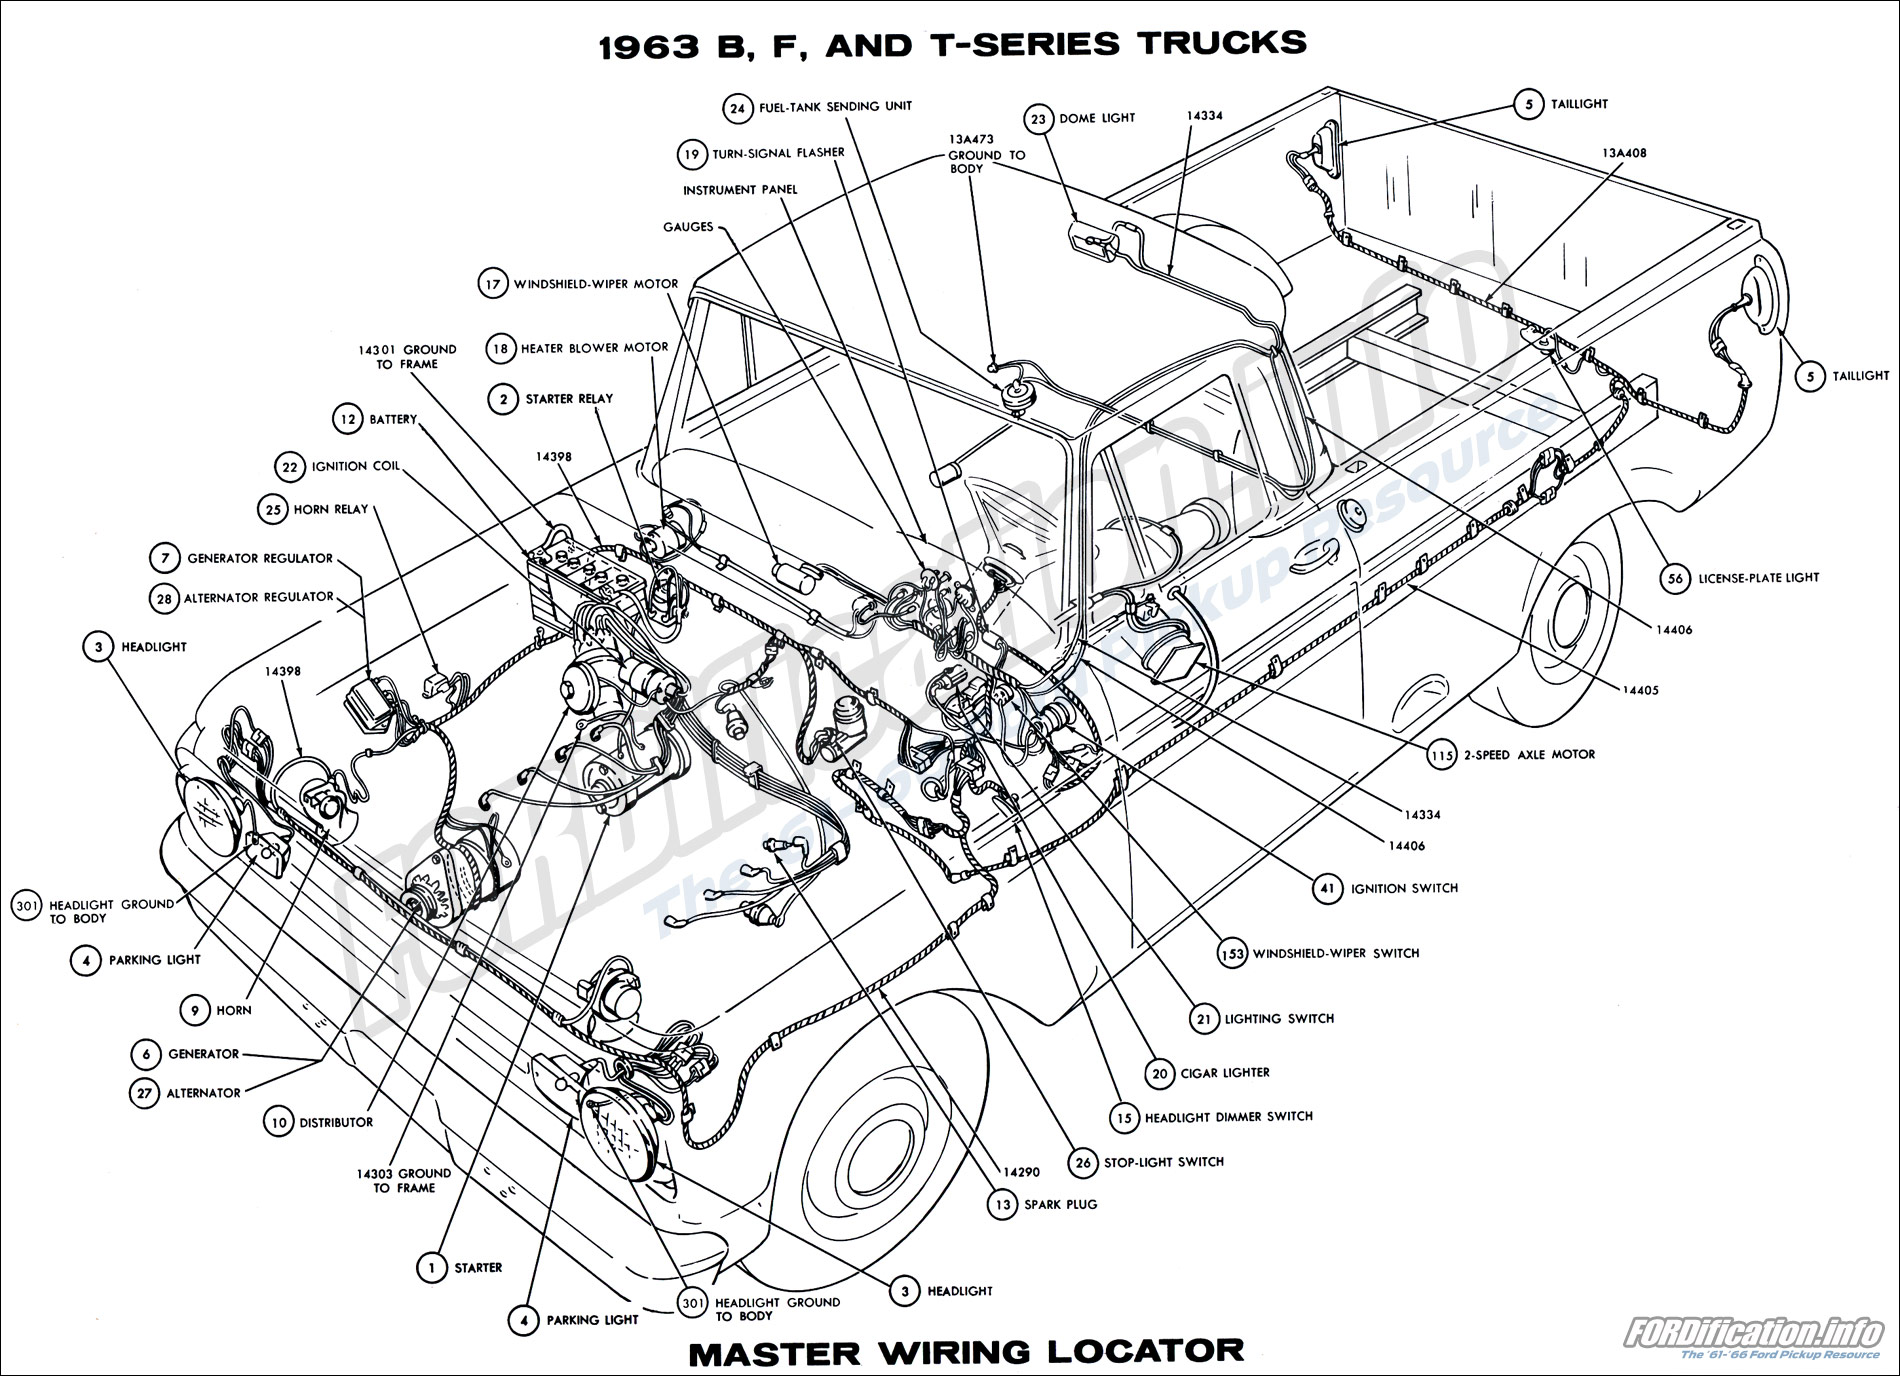 1946 Ford Wiring Diagram Nice Place To Get 1953 Cadillac Harness Diagrams Rh 20 Kunstvorort Waltrop De Super Deluxe